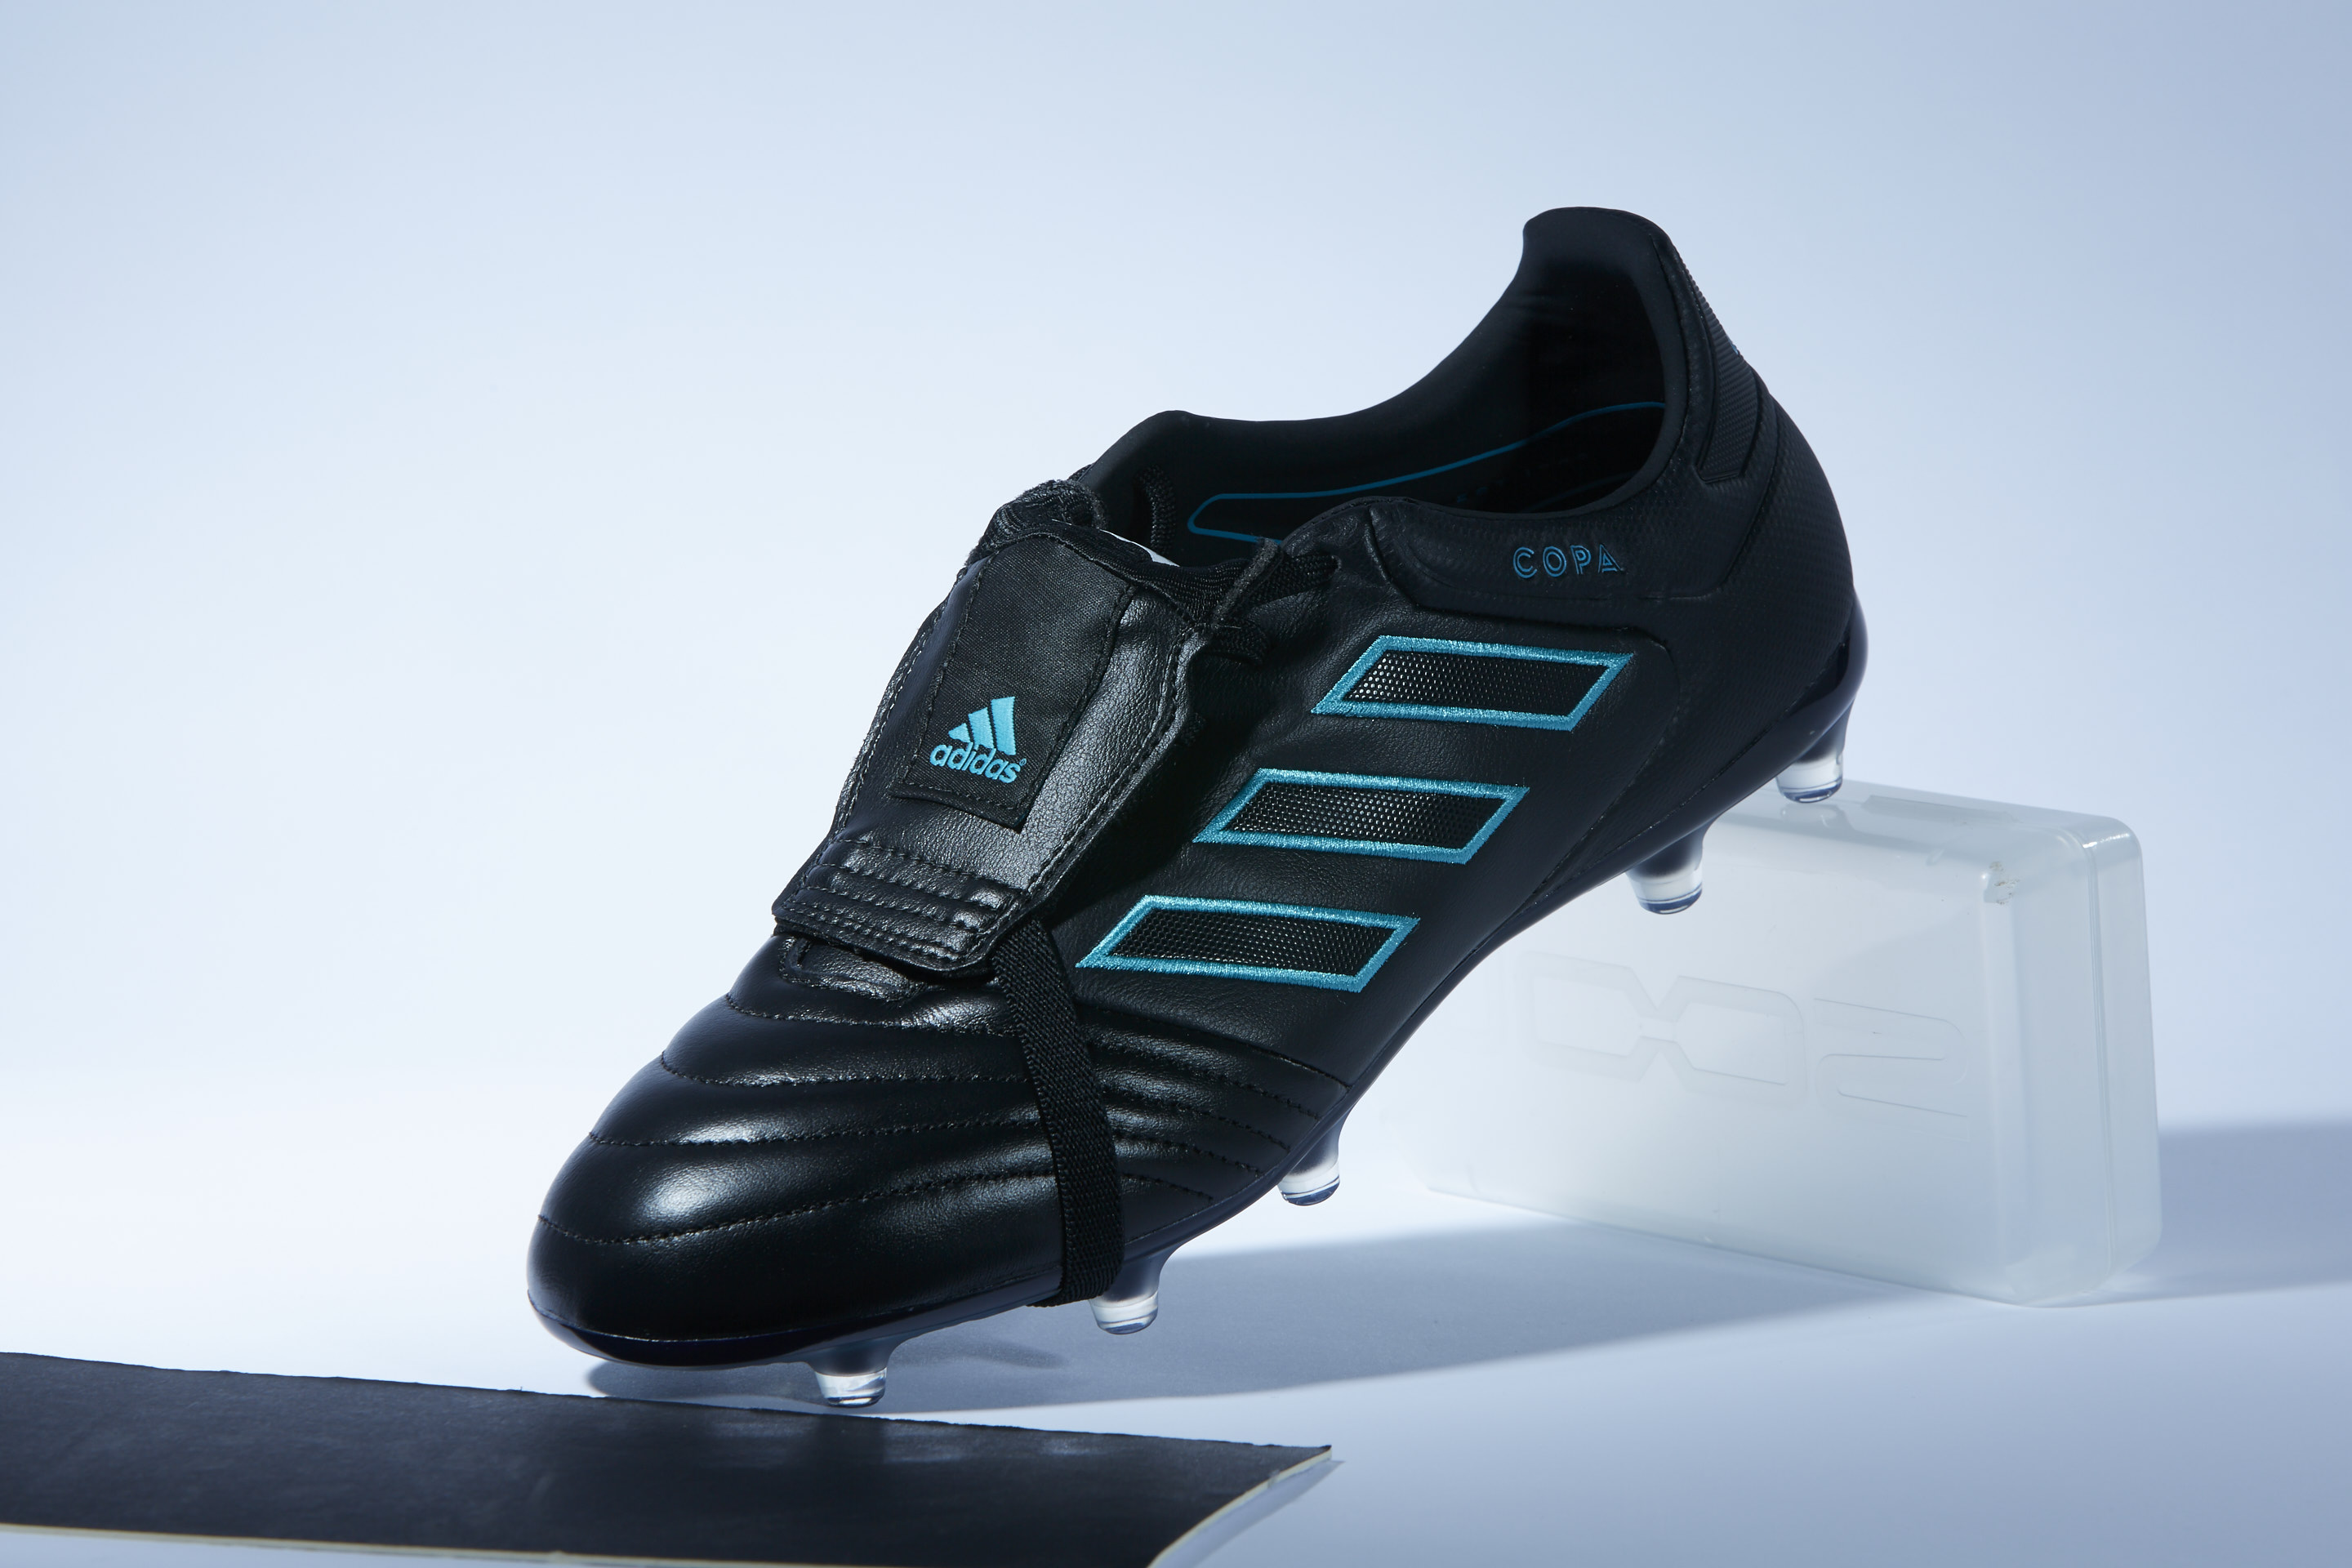 the best attitude d6004 5bf57 Introducing the EXCLUSIVE adidas Copa Gloro 17.2 Football Boots